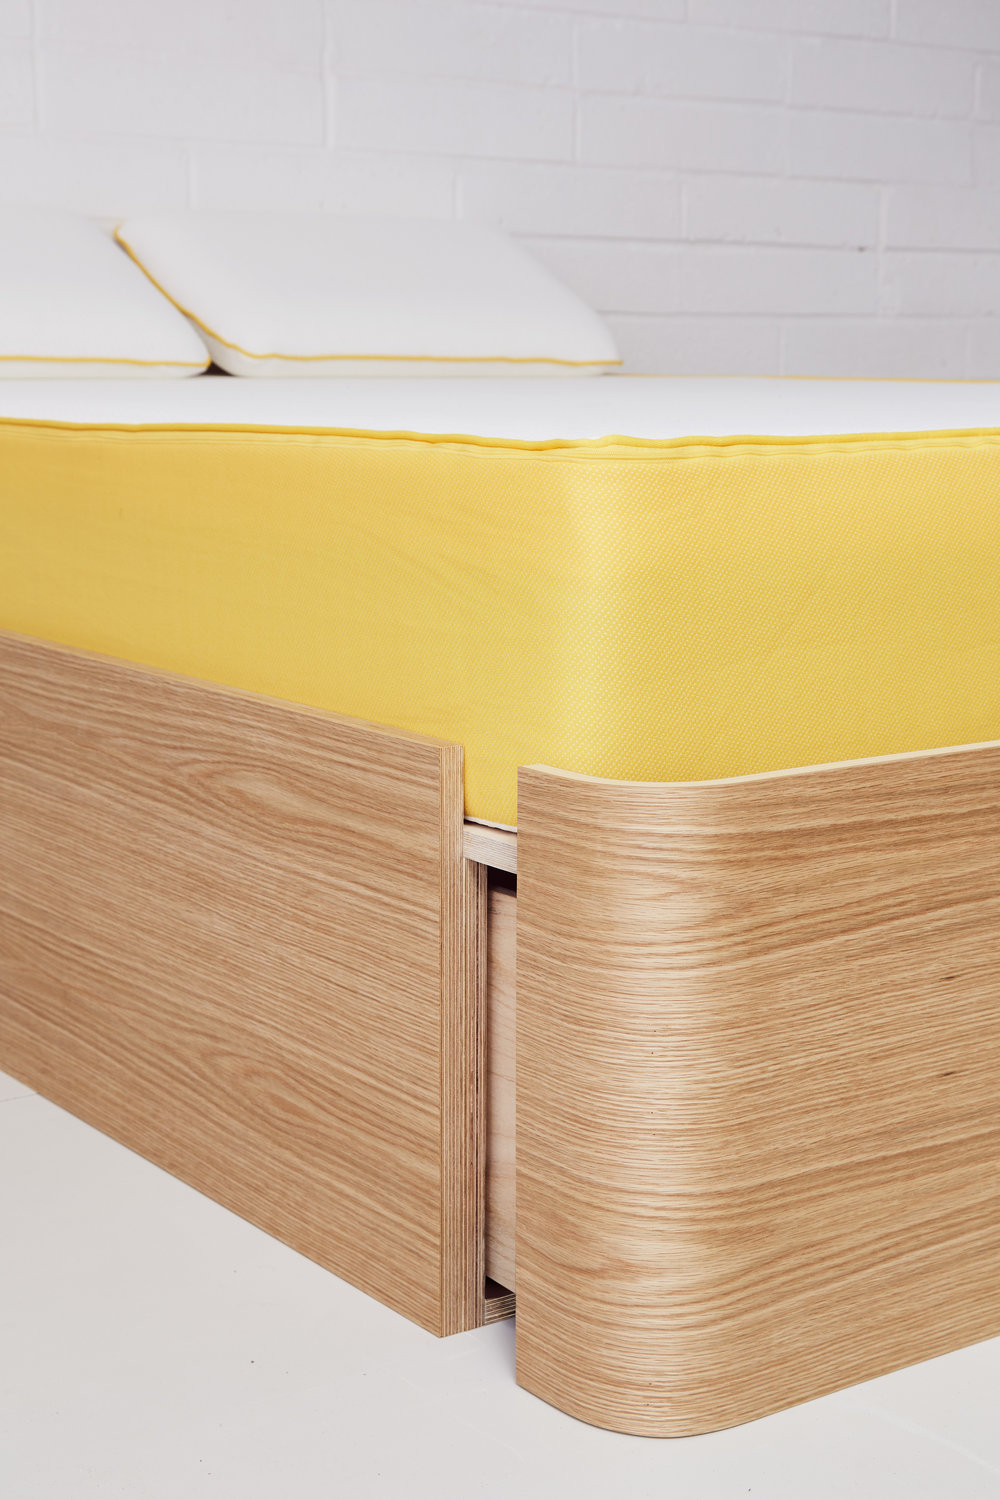 Bed storage drawer by Lozi